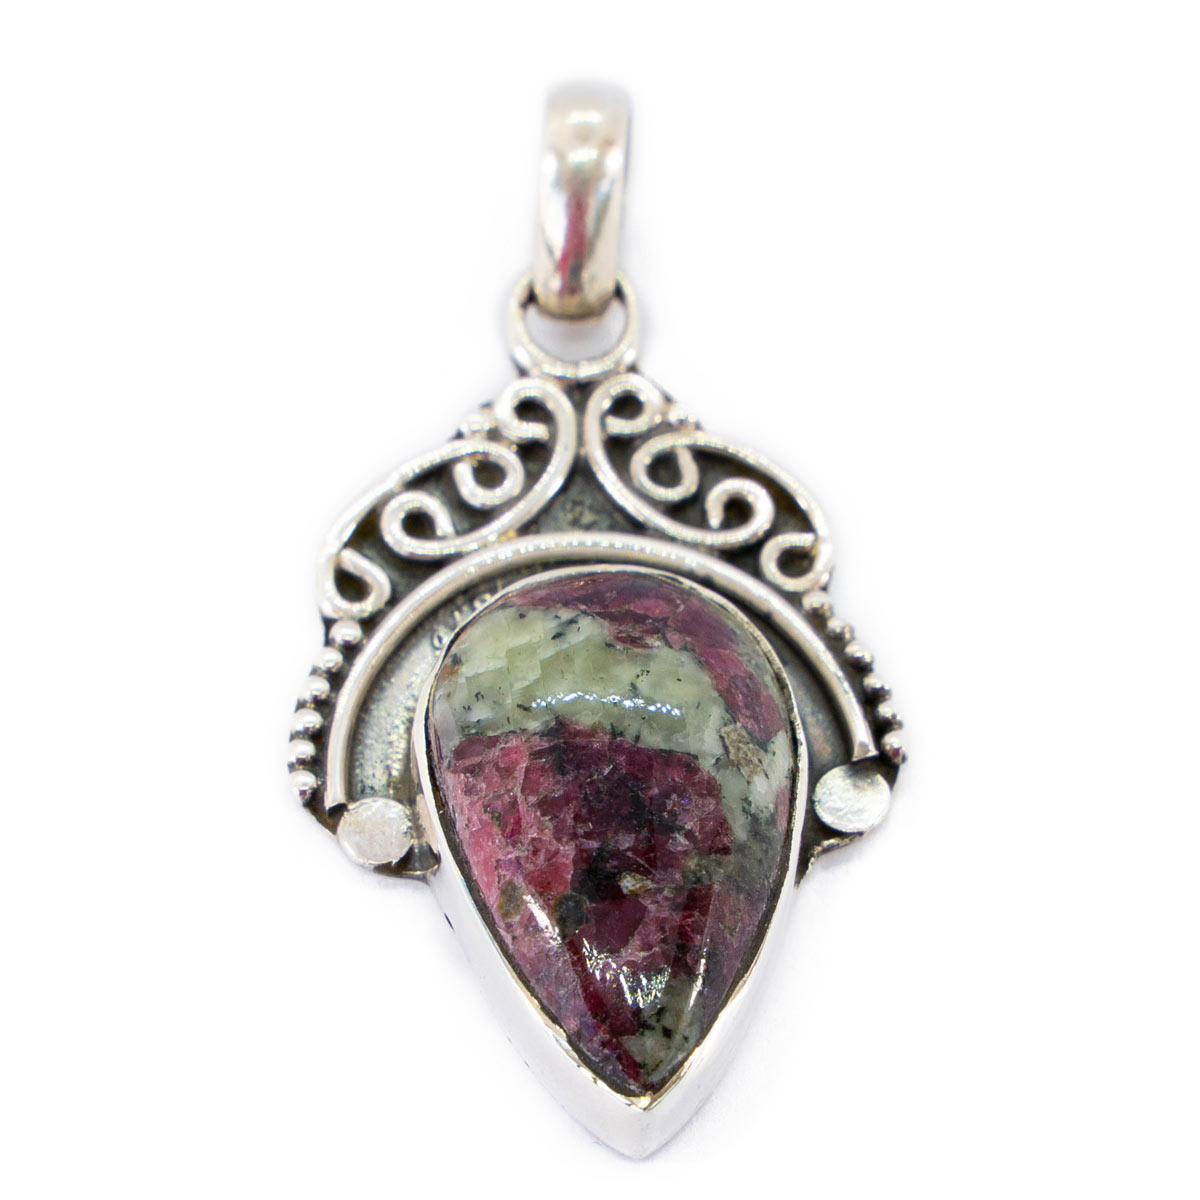 Sri Avinash Infused™ Eudialyte Pendant in Sterling Silver - Relationships & Prosperity Infusion